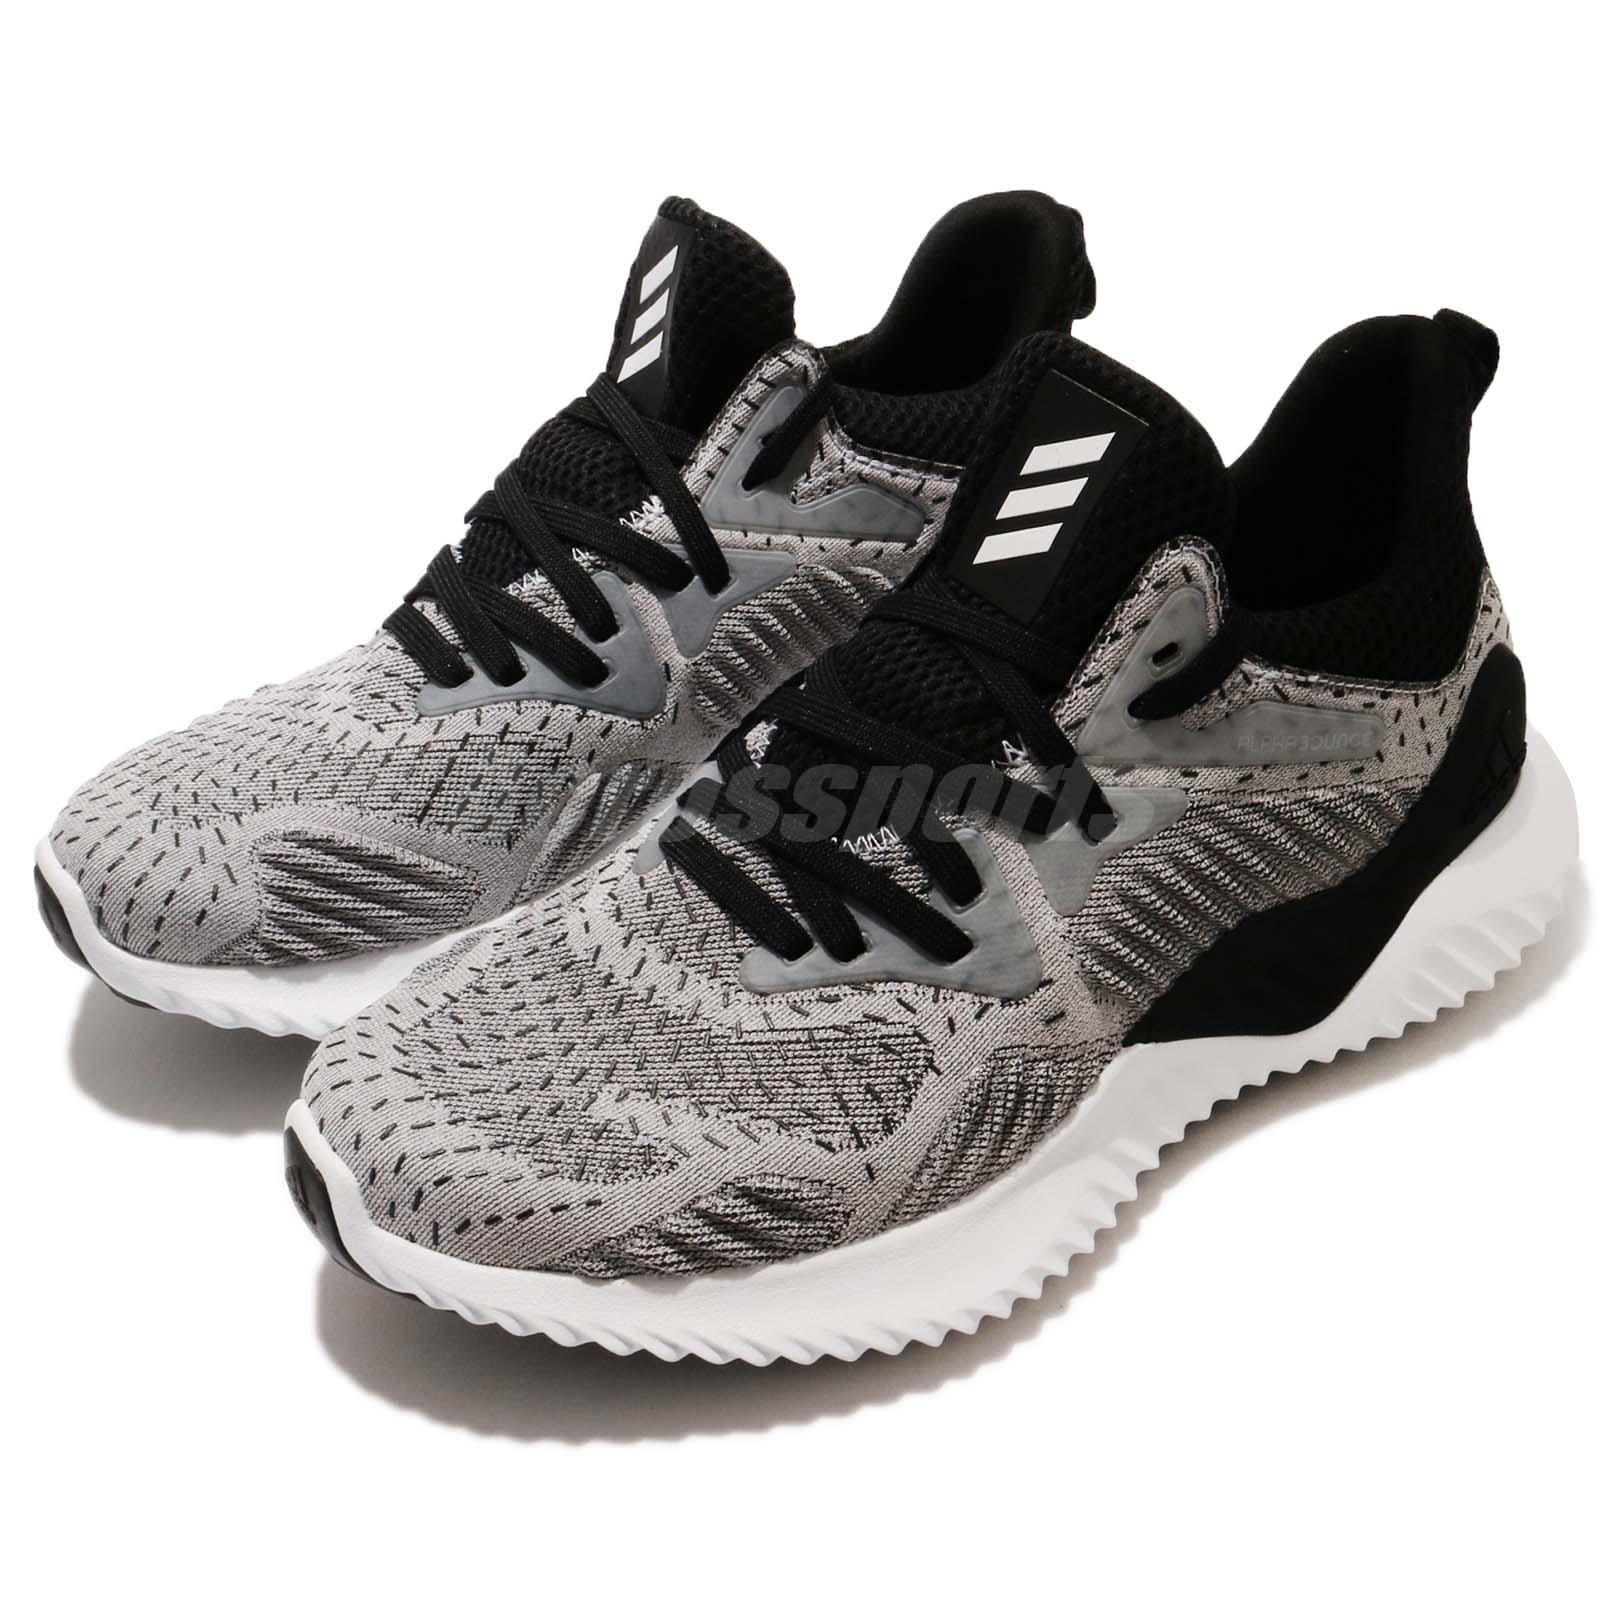 ec1e12fcc2ba9 Details about adidas AlphaBOUNCE Beyond J Grey White Black Junior Youth Running  Shoes DB1417